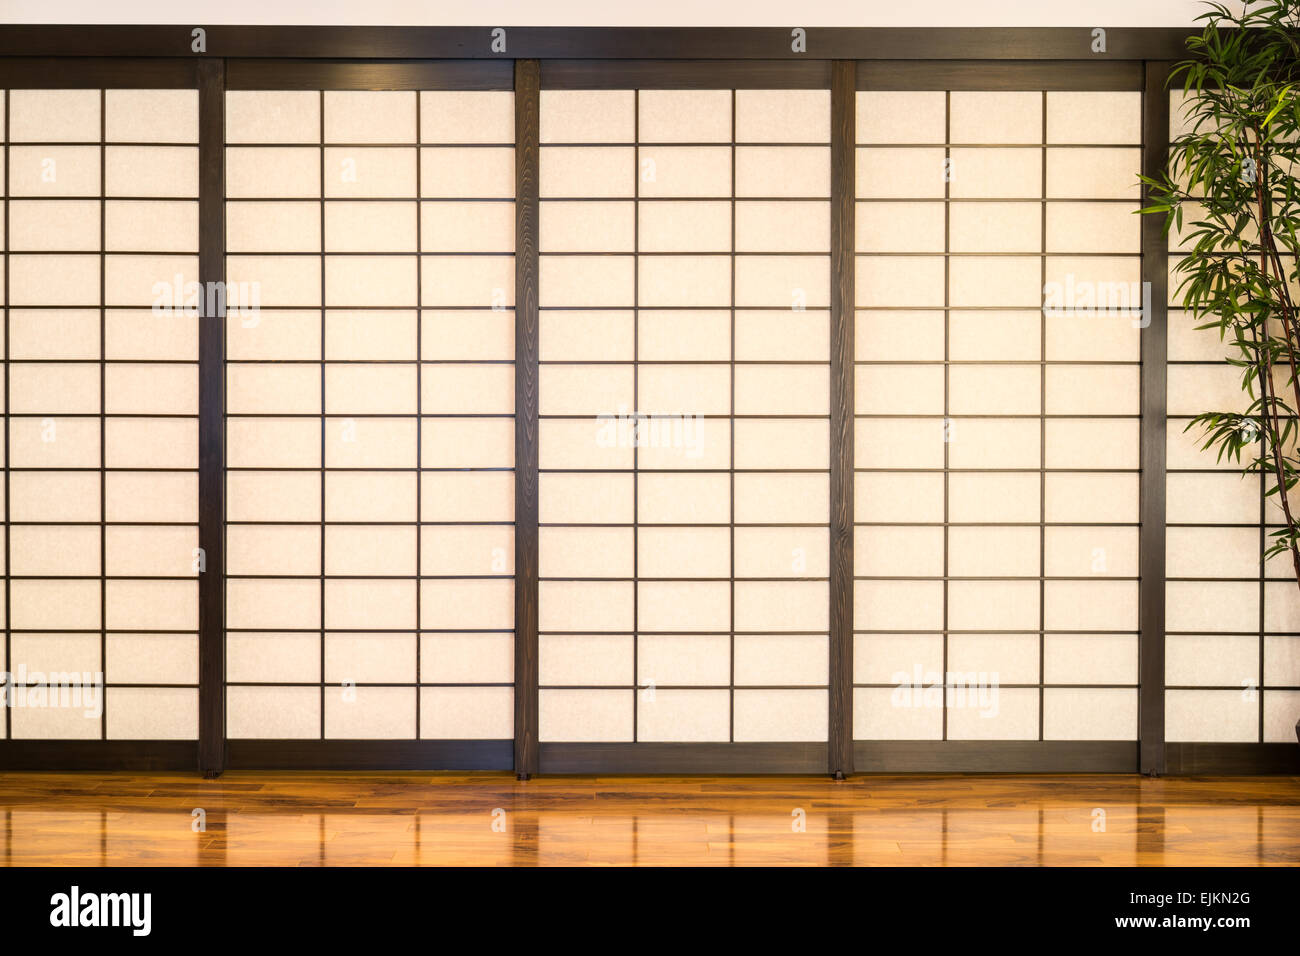 Japanese Screens - Stock Image